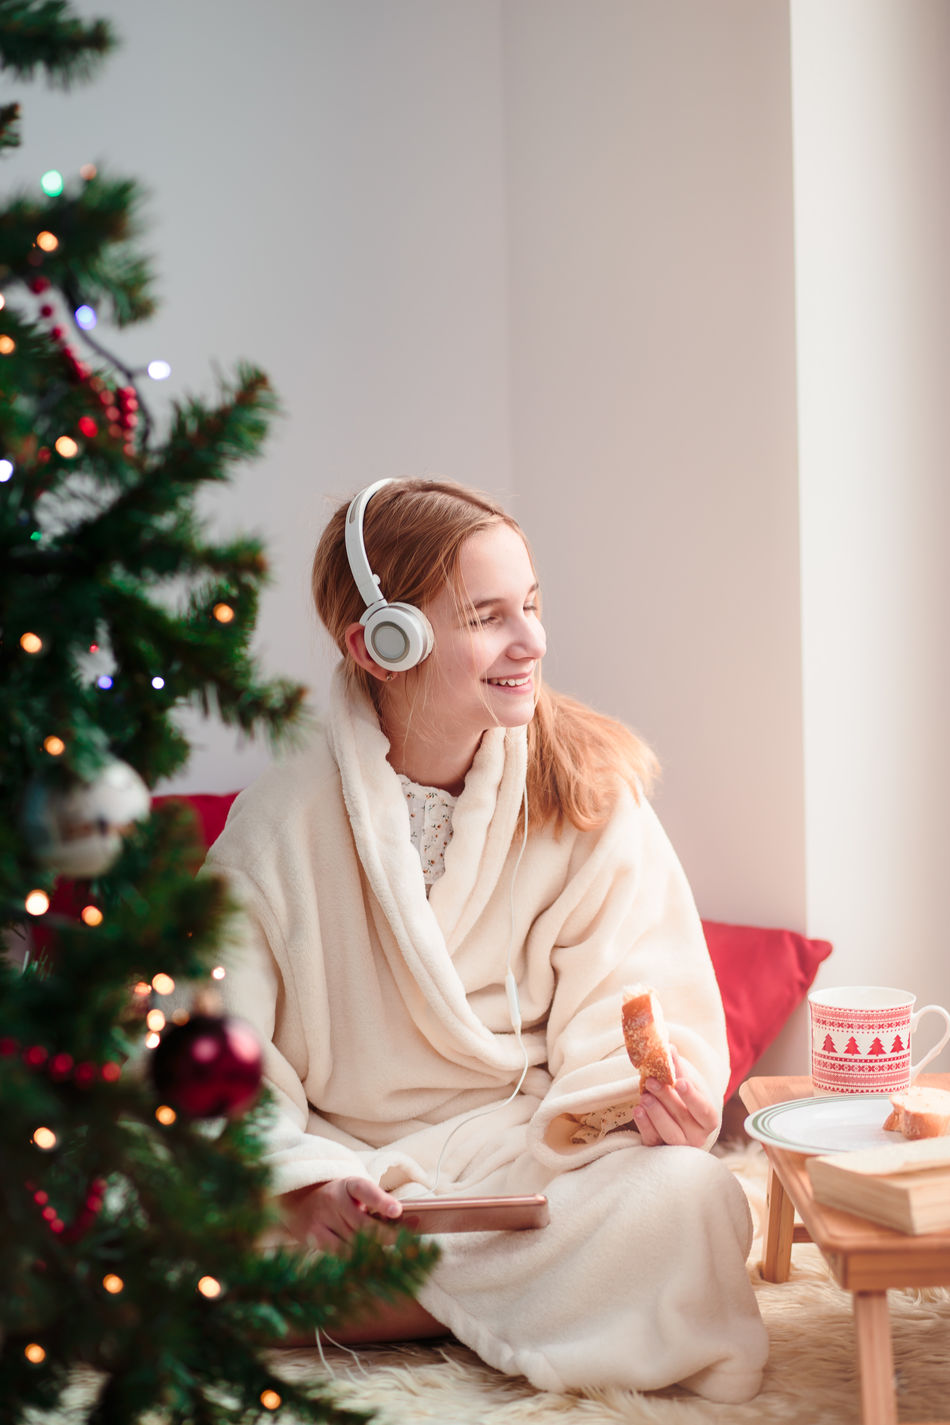 Beautiful stock photos of weihnachtsbaum,  12-13 Years,  Adult,  Adults Only,  At Home